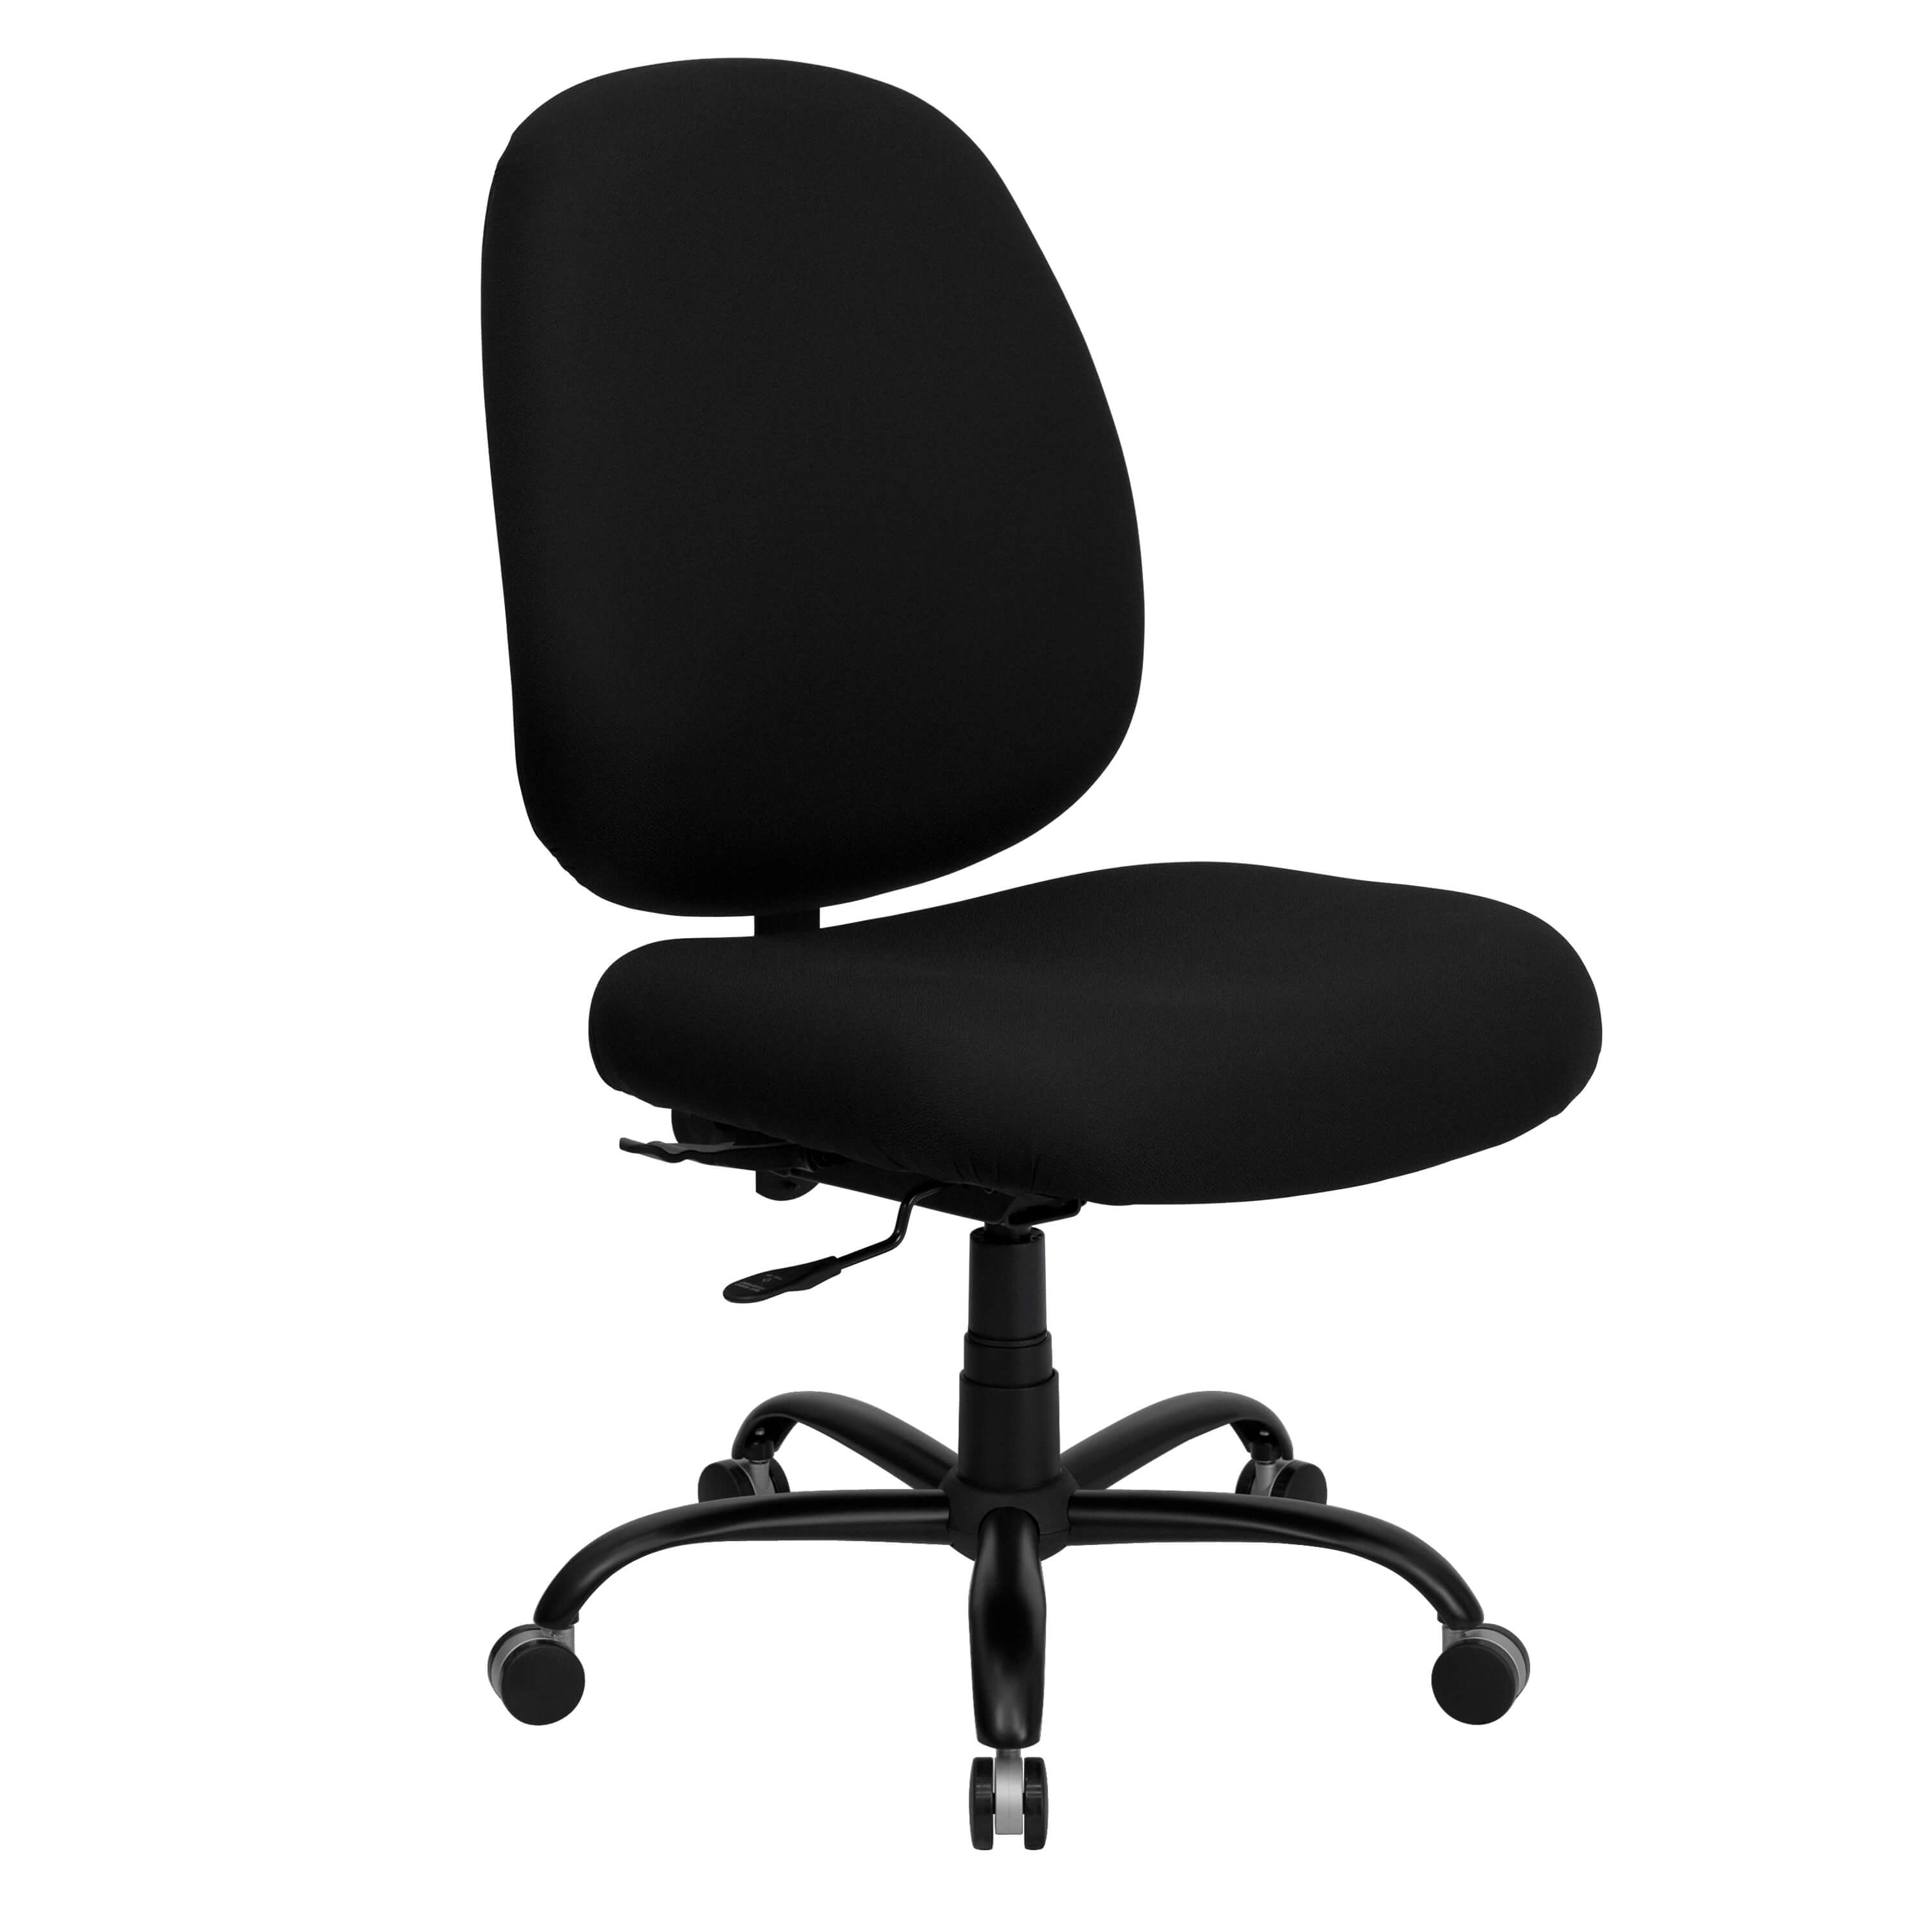 big-and-tall-office-chairs-big-tall-office-chair-1.jpg